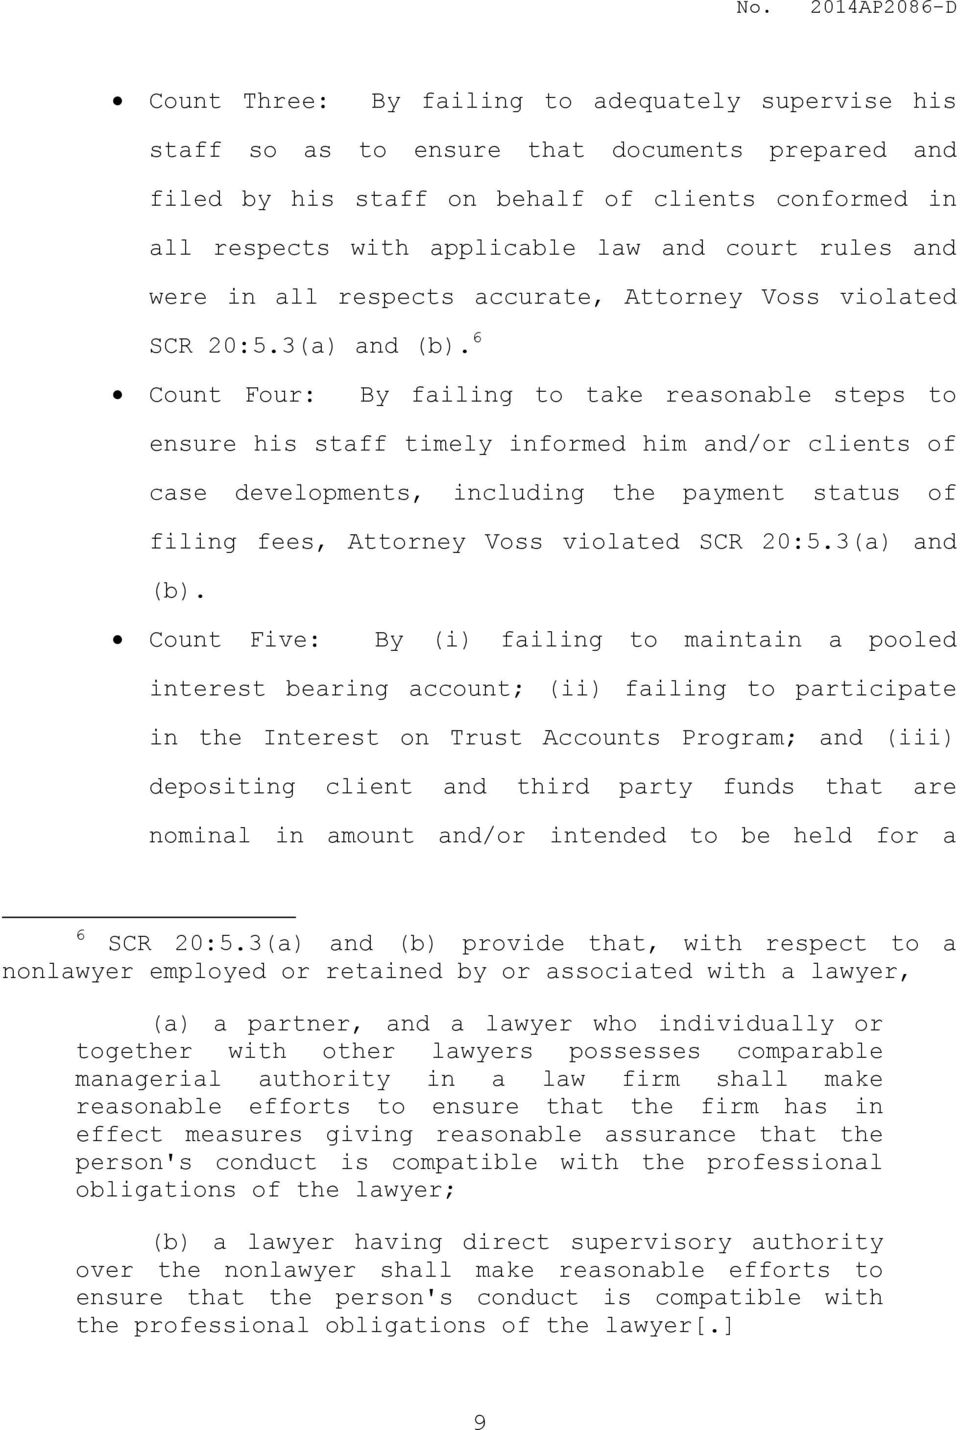 6 Count Four: By failing to take reasonable steps to ensure his staff timely informed him and/or clients of case developments, including the payment status of filing fees, Attorney Voss violated SCR